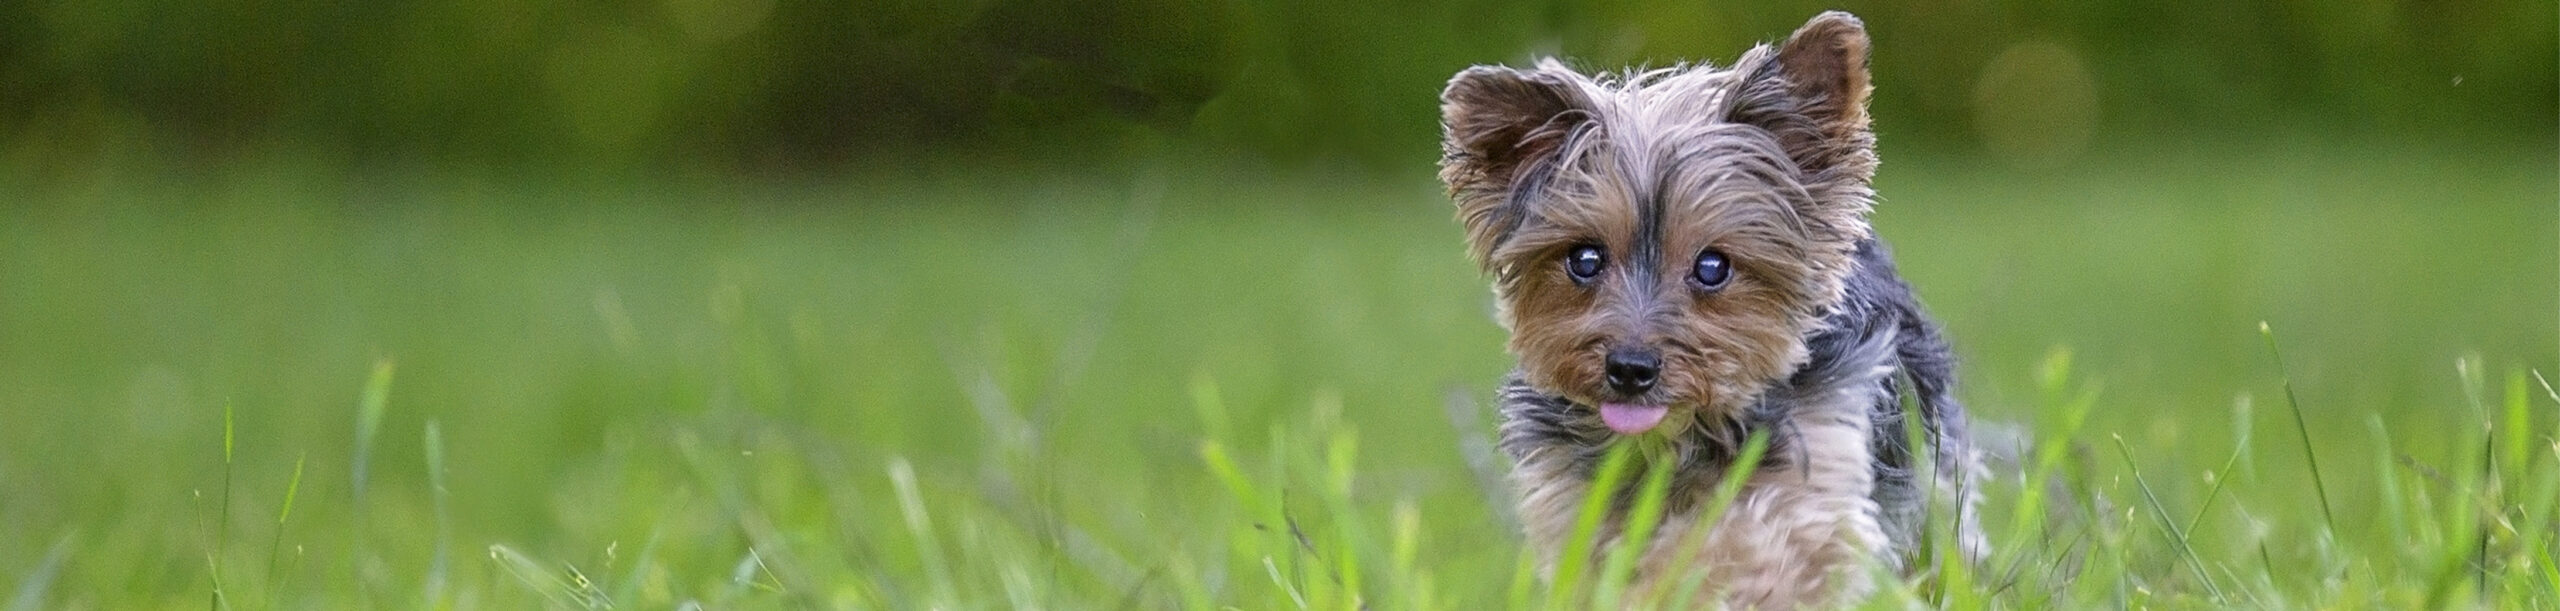 Small Dog running in grass with tongue out